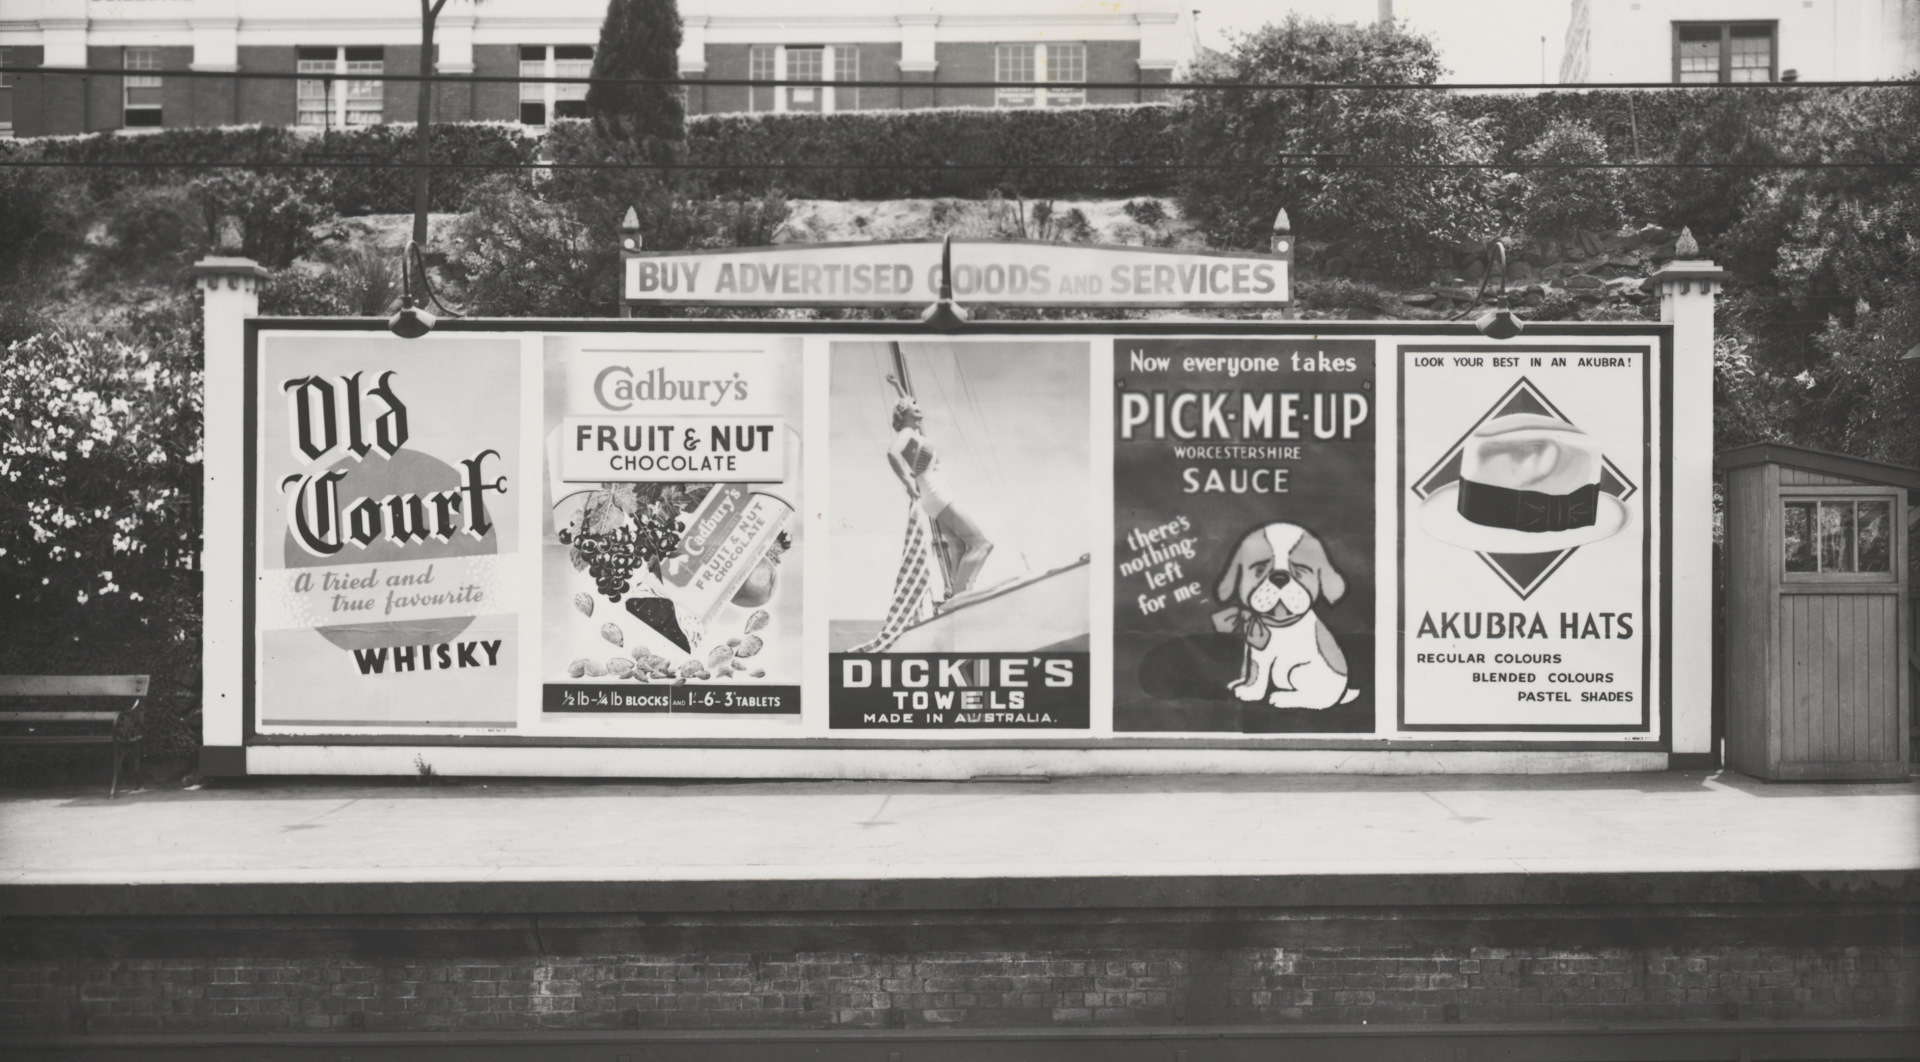 Advertising billboard for Old Court whisky, Cadbury's chocolate, Dickie's towels, Pick-me-up Worcestershire sauce and Akubra hats on railway platform, Melbourne, ca. 1930